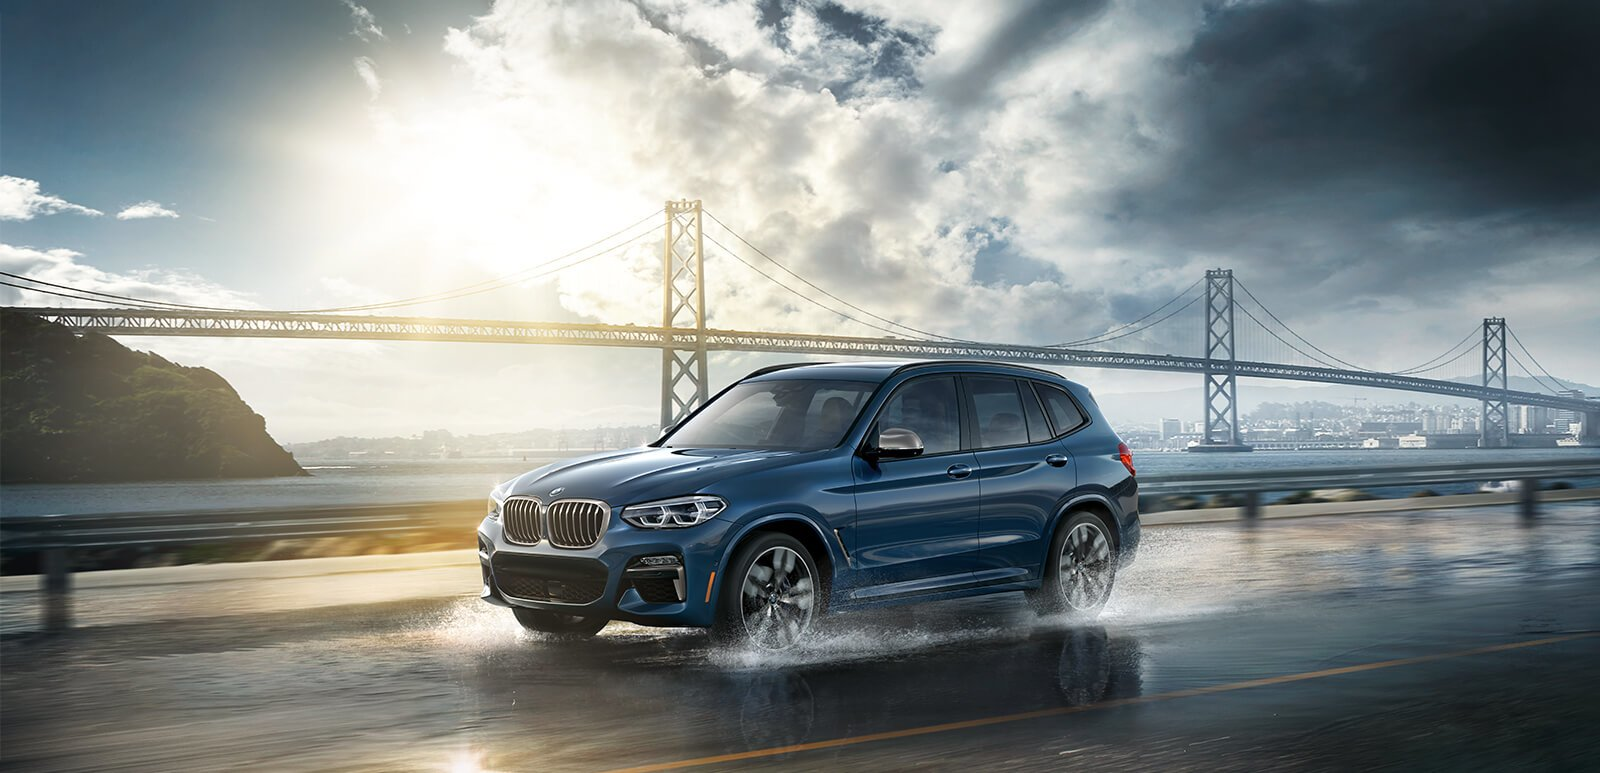 Bmw X3 Lease Prices Offers Tenafly Nj